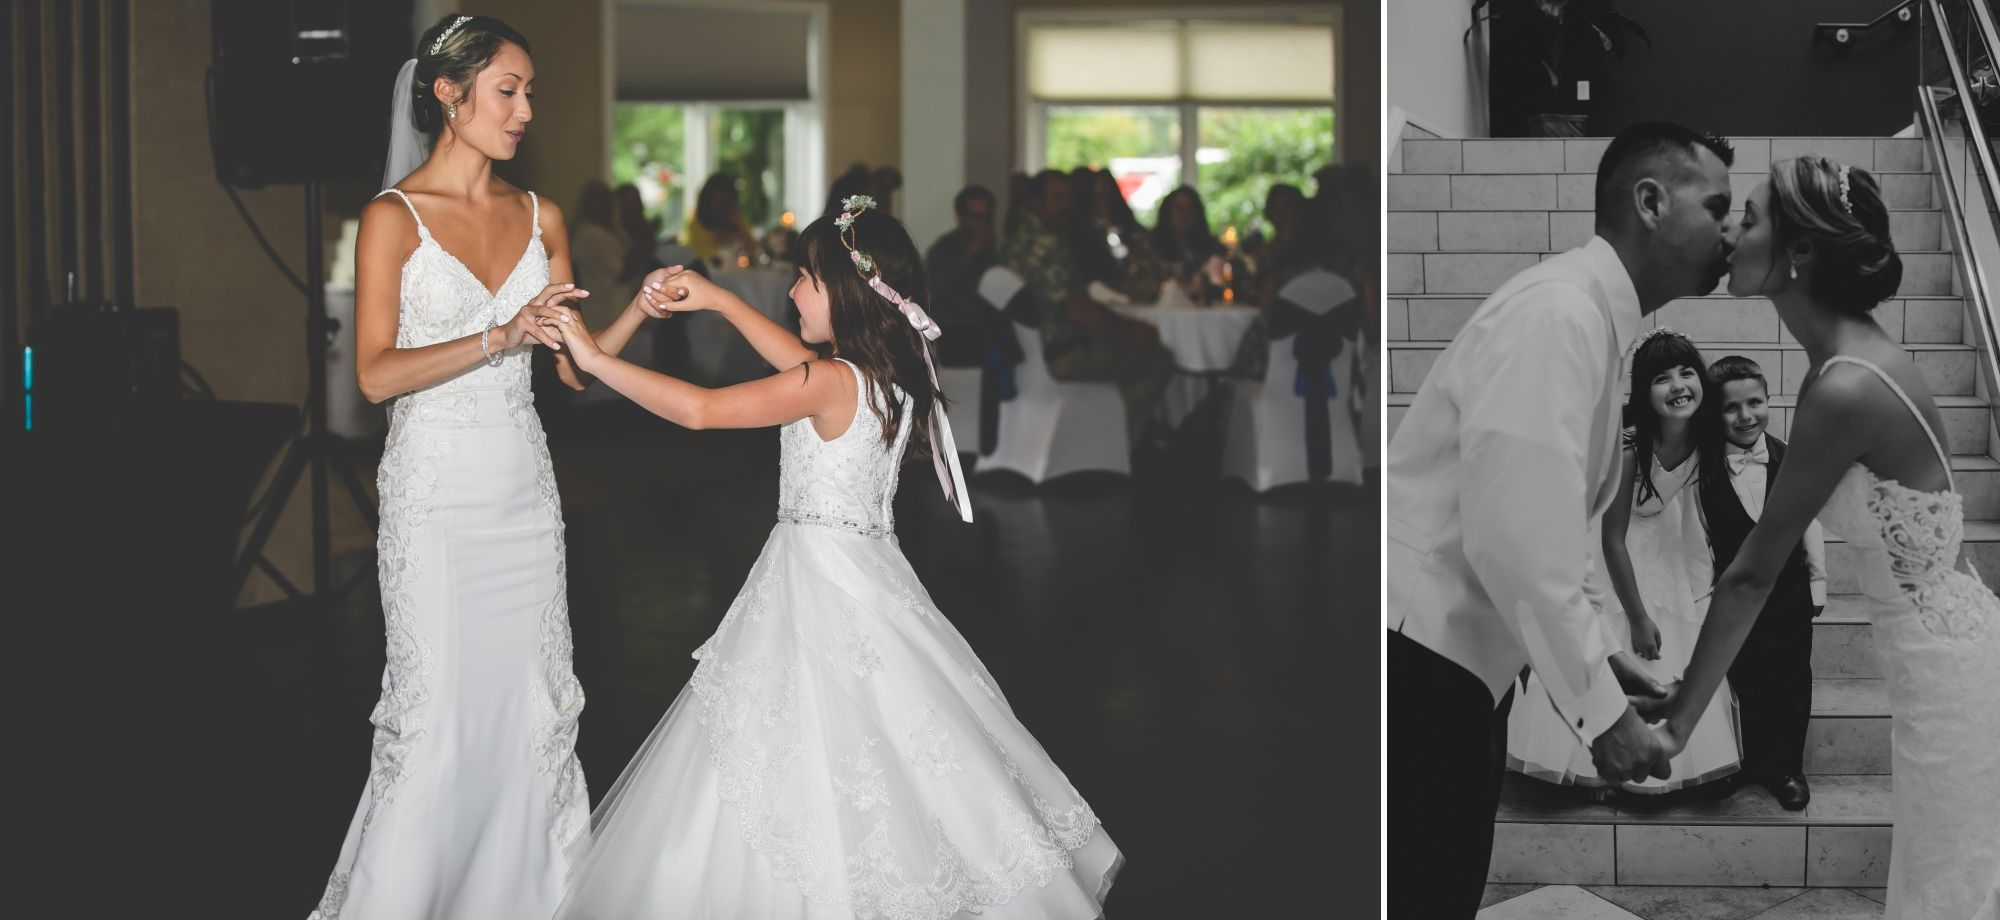 Photo of the bride and her step daughter dancing then the bride and groom kissing with their kids in the background.